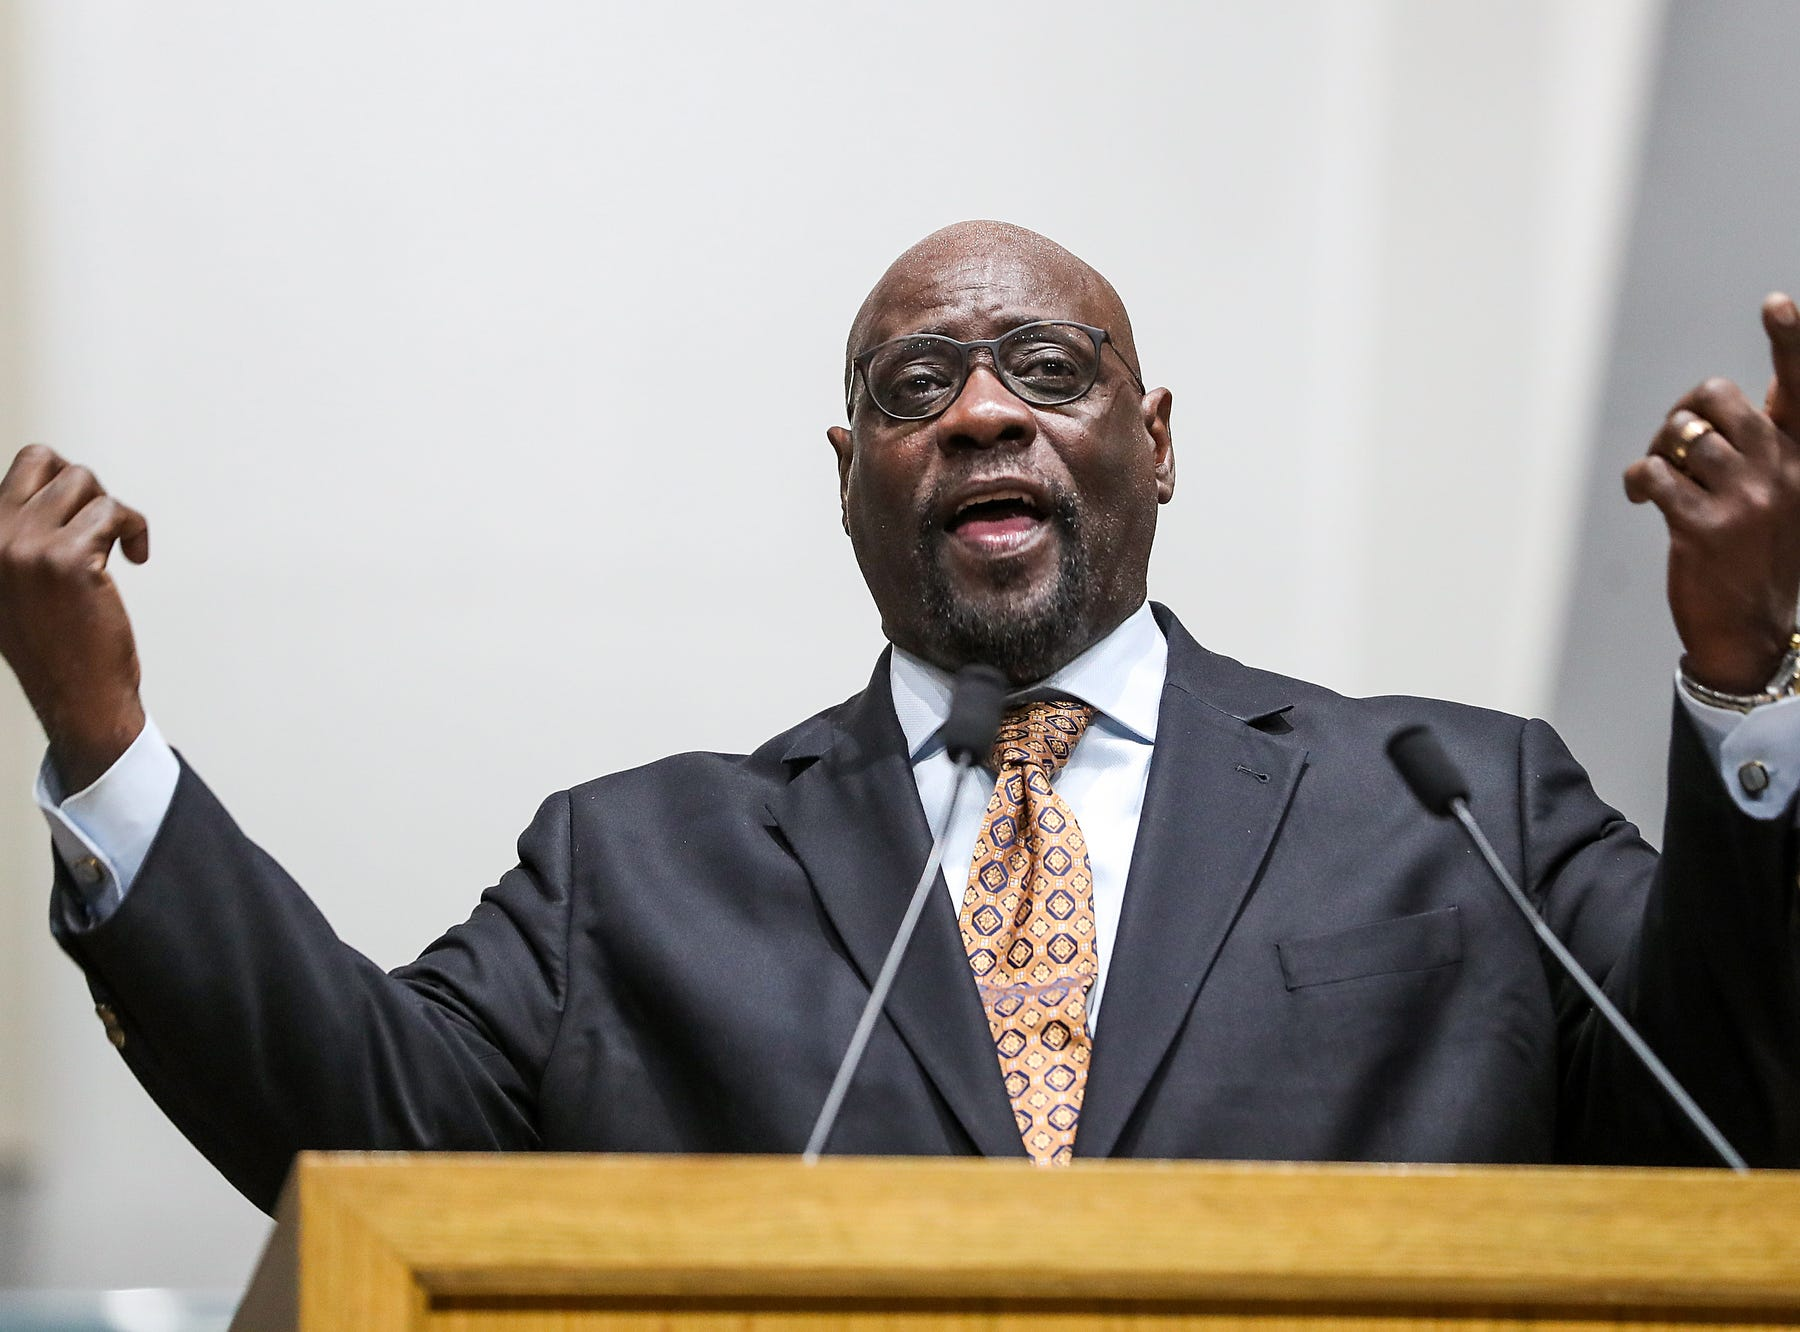 Bishop Kevin Harrison, from Grace Apostolic Church, speaks during a service celebrating the anniversary of the Emancipation Proclamation and honoring local leaders, at Olivet Missionary Baptist Church in Indianapolis, Tuesday, Jan. 1, 2019.